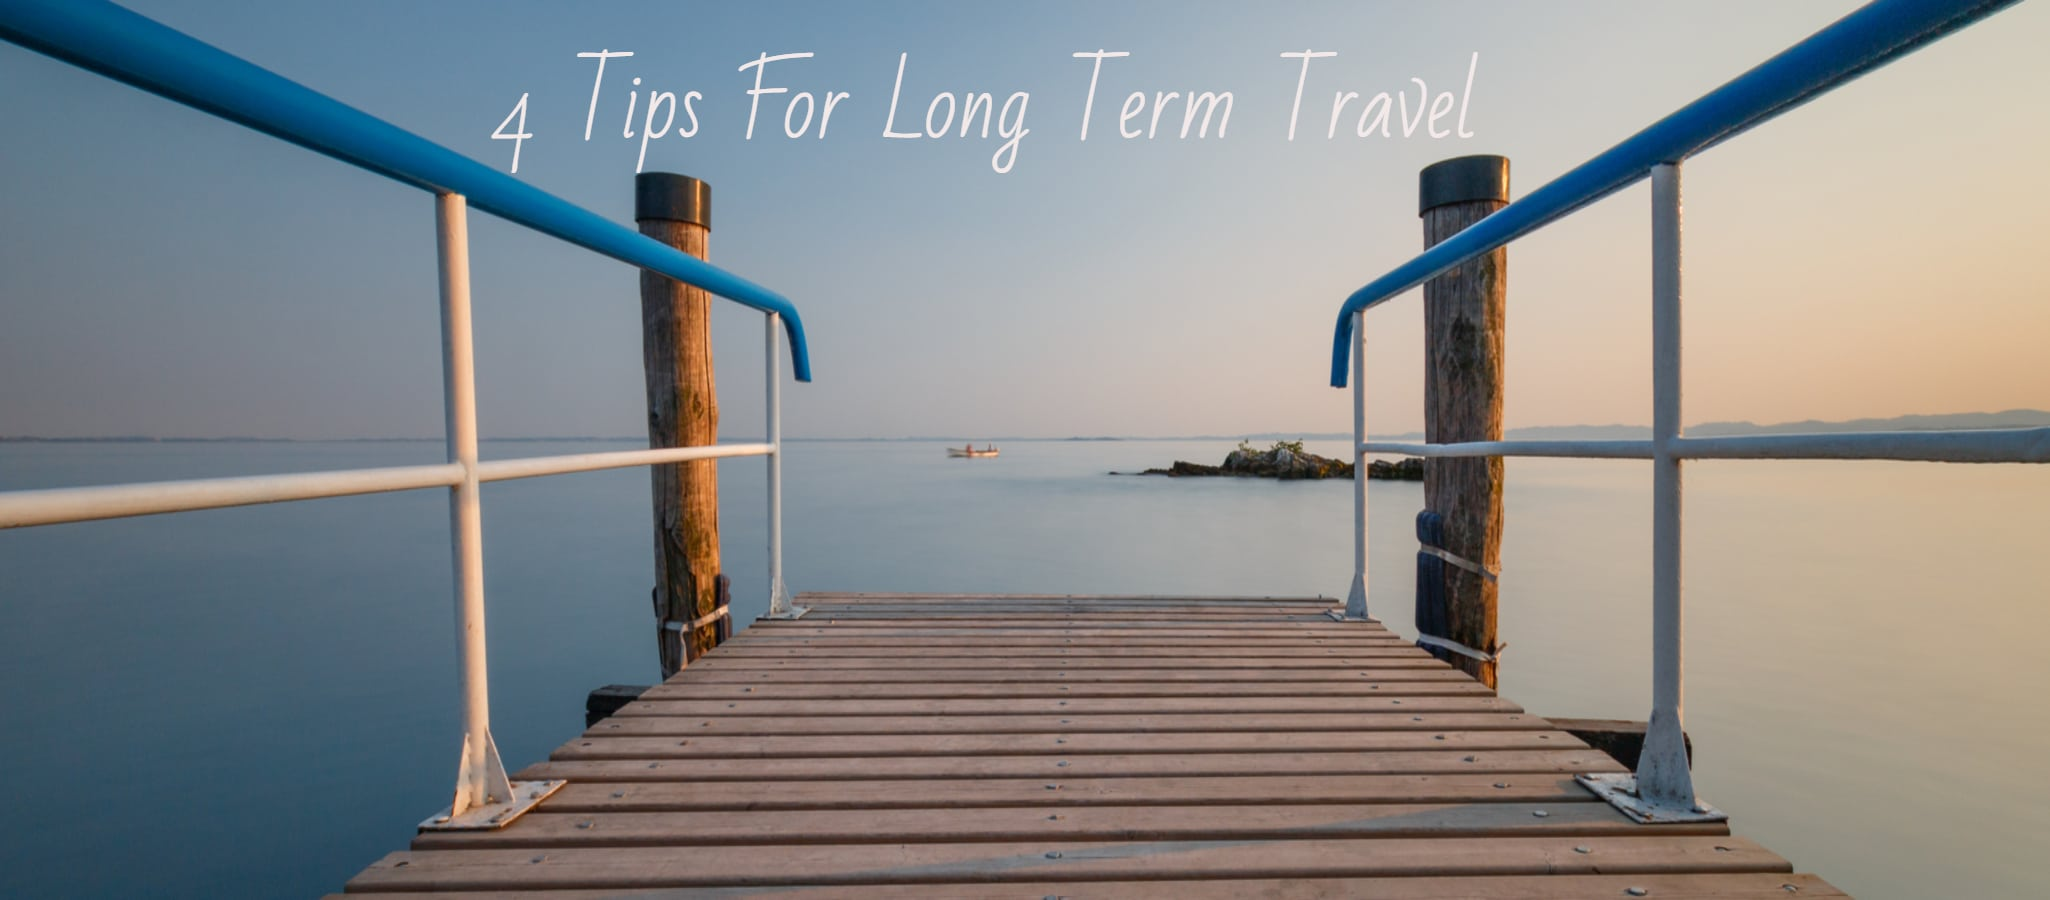 New To This Stuff? Here are 4 Tips For Long Term Travel